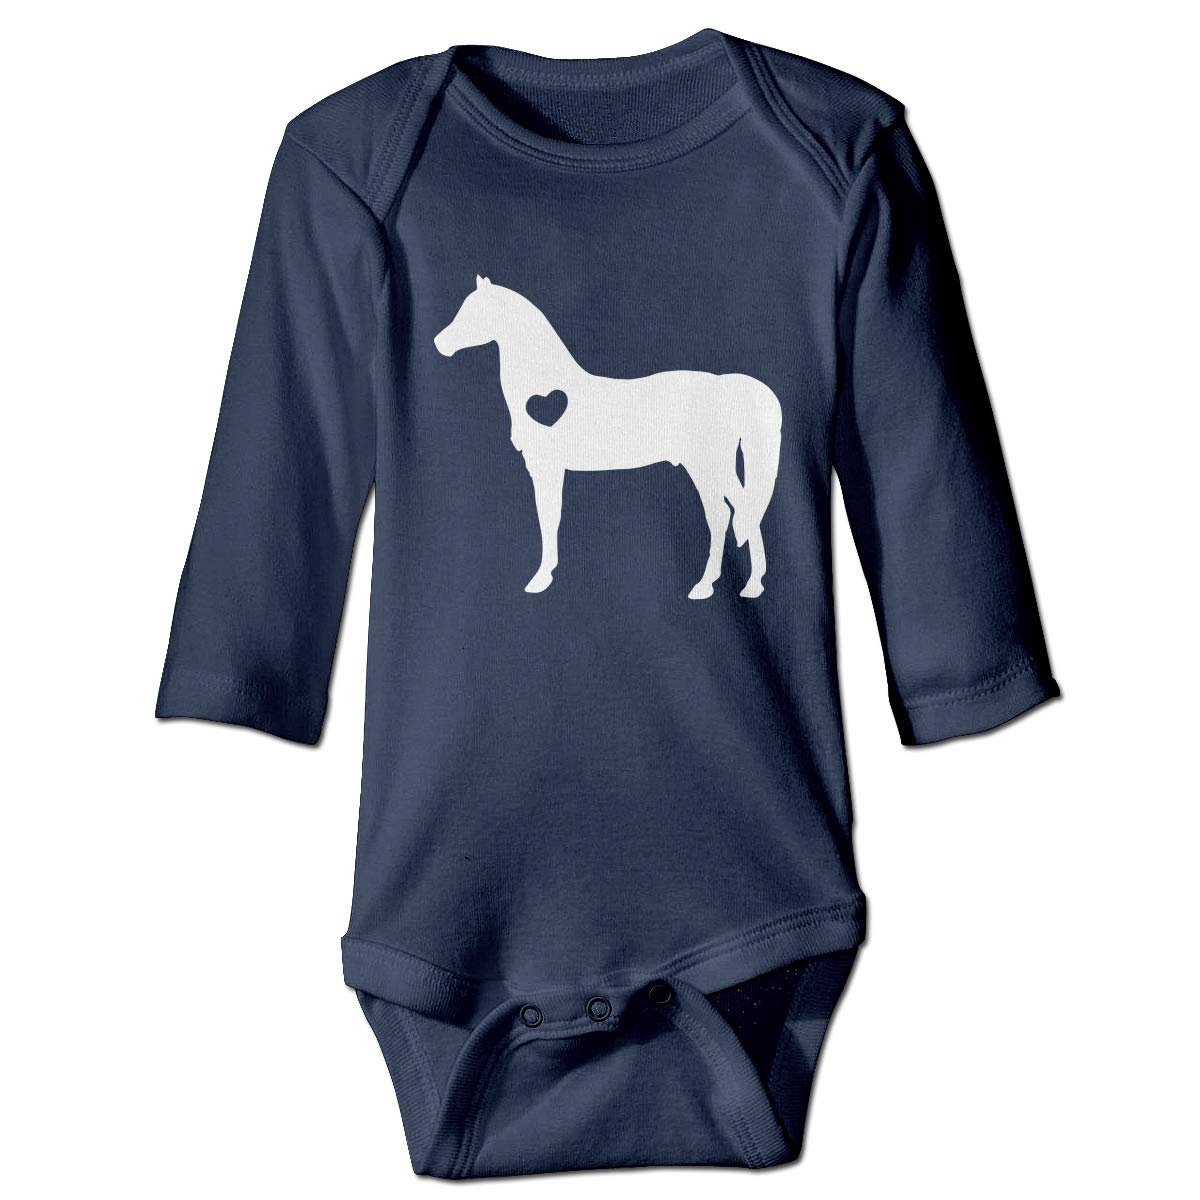 Baby Infant Toddler Long Sleeve Jumpsuit Romper Horse Riding Silhouette Print Jumpsuit